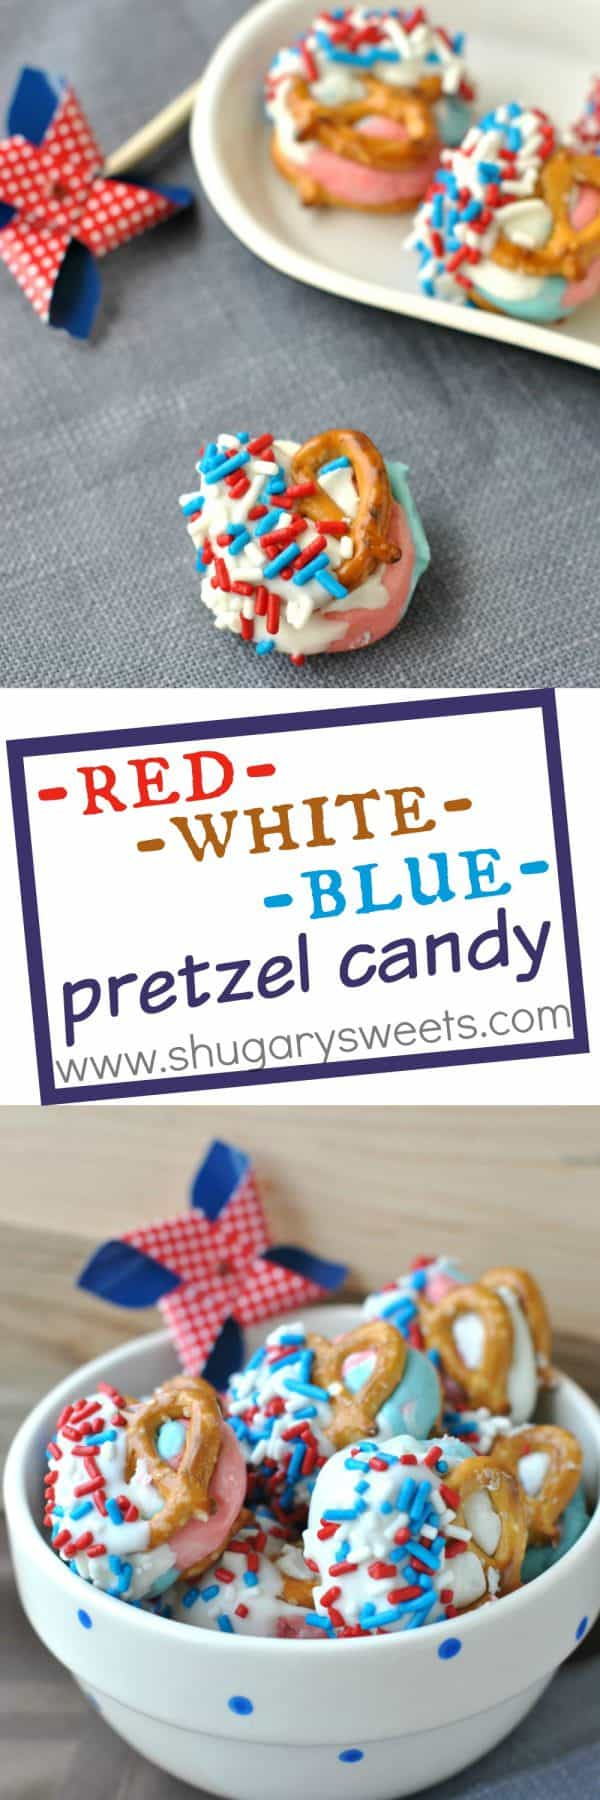 Need a fun snack to bring to a 4th of July celebration? These Red, White and Blue Pretzels are delicious. Use gelatin powder to give fun flavors and color to these fun candies!